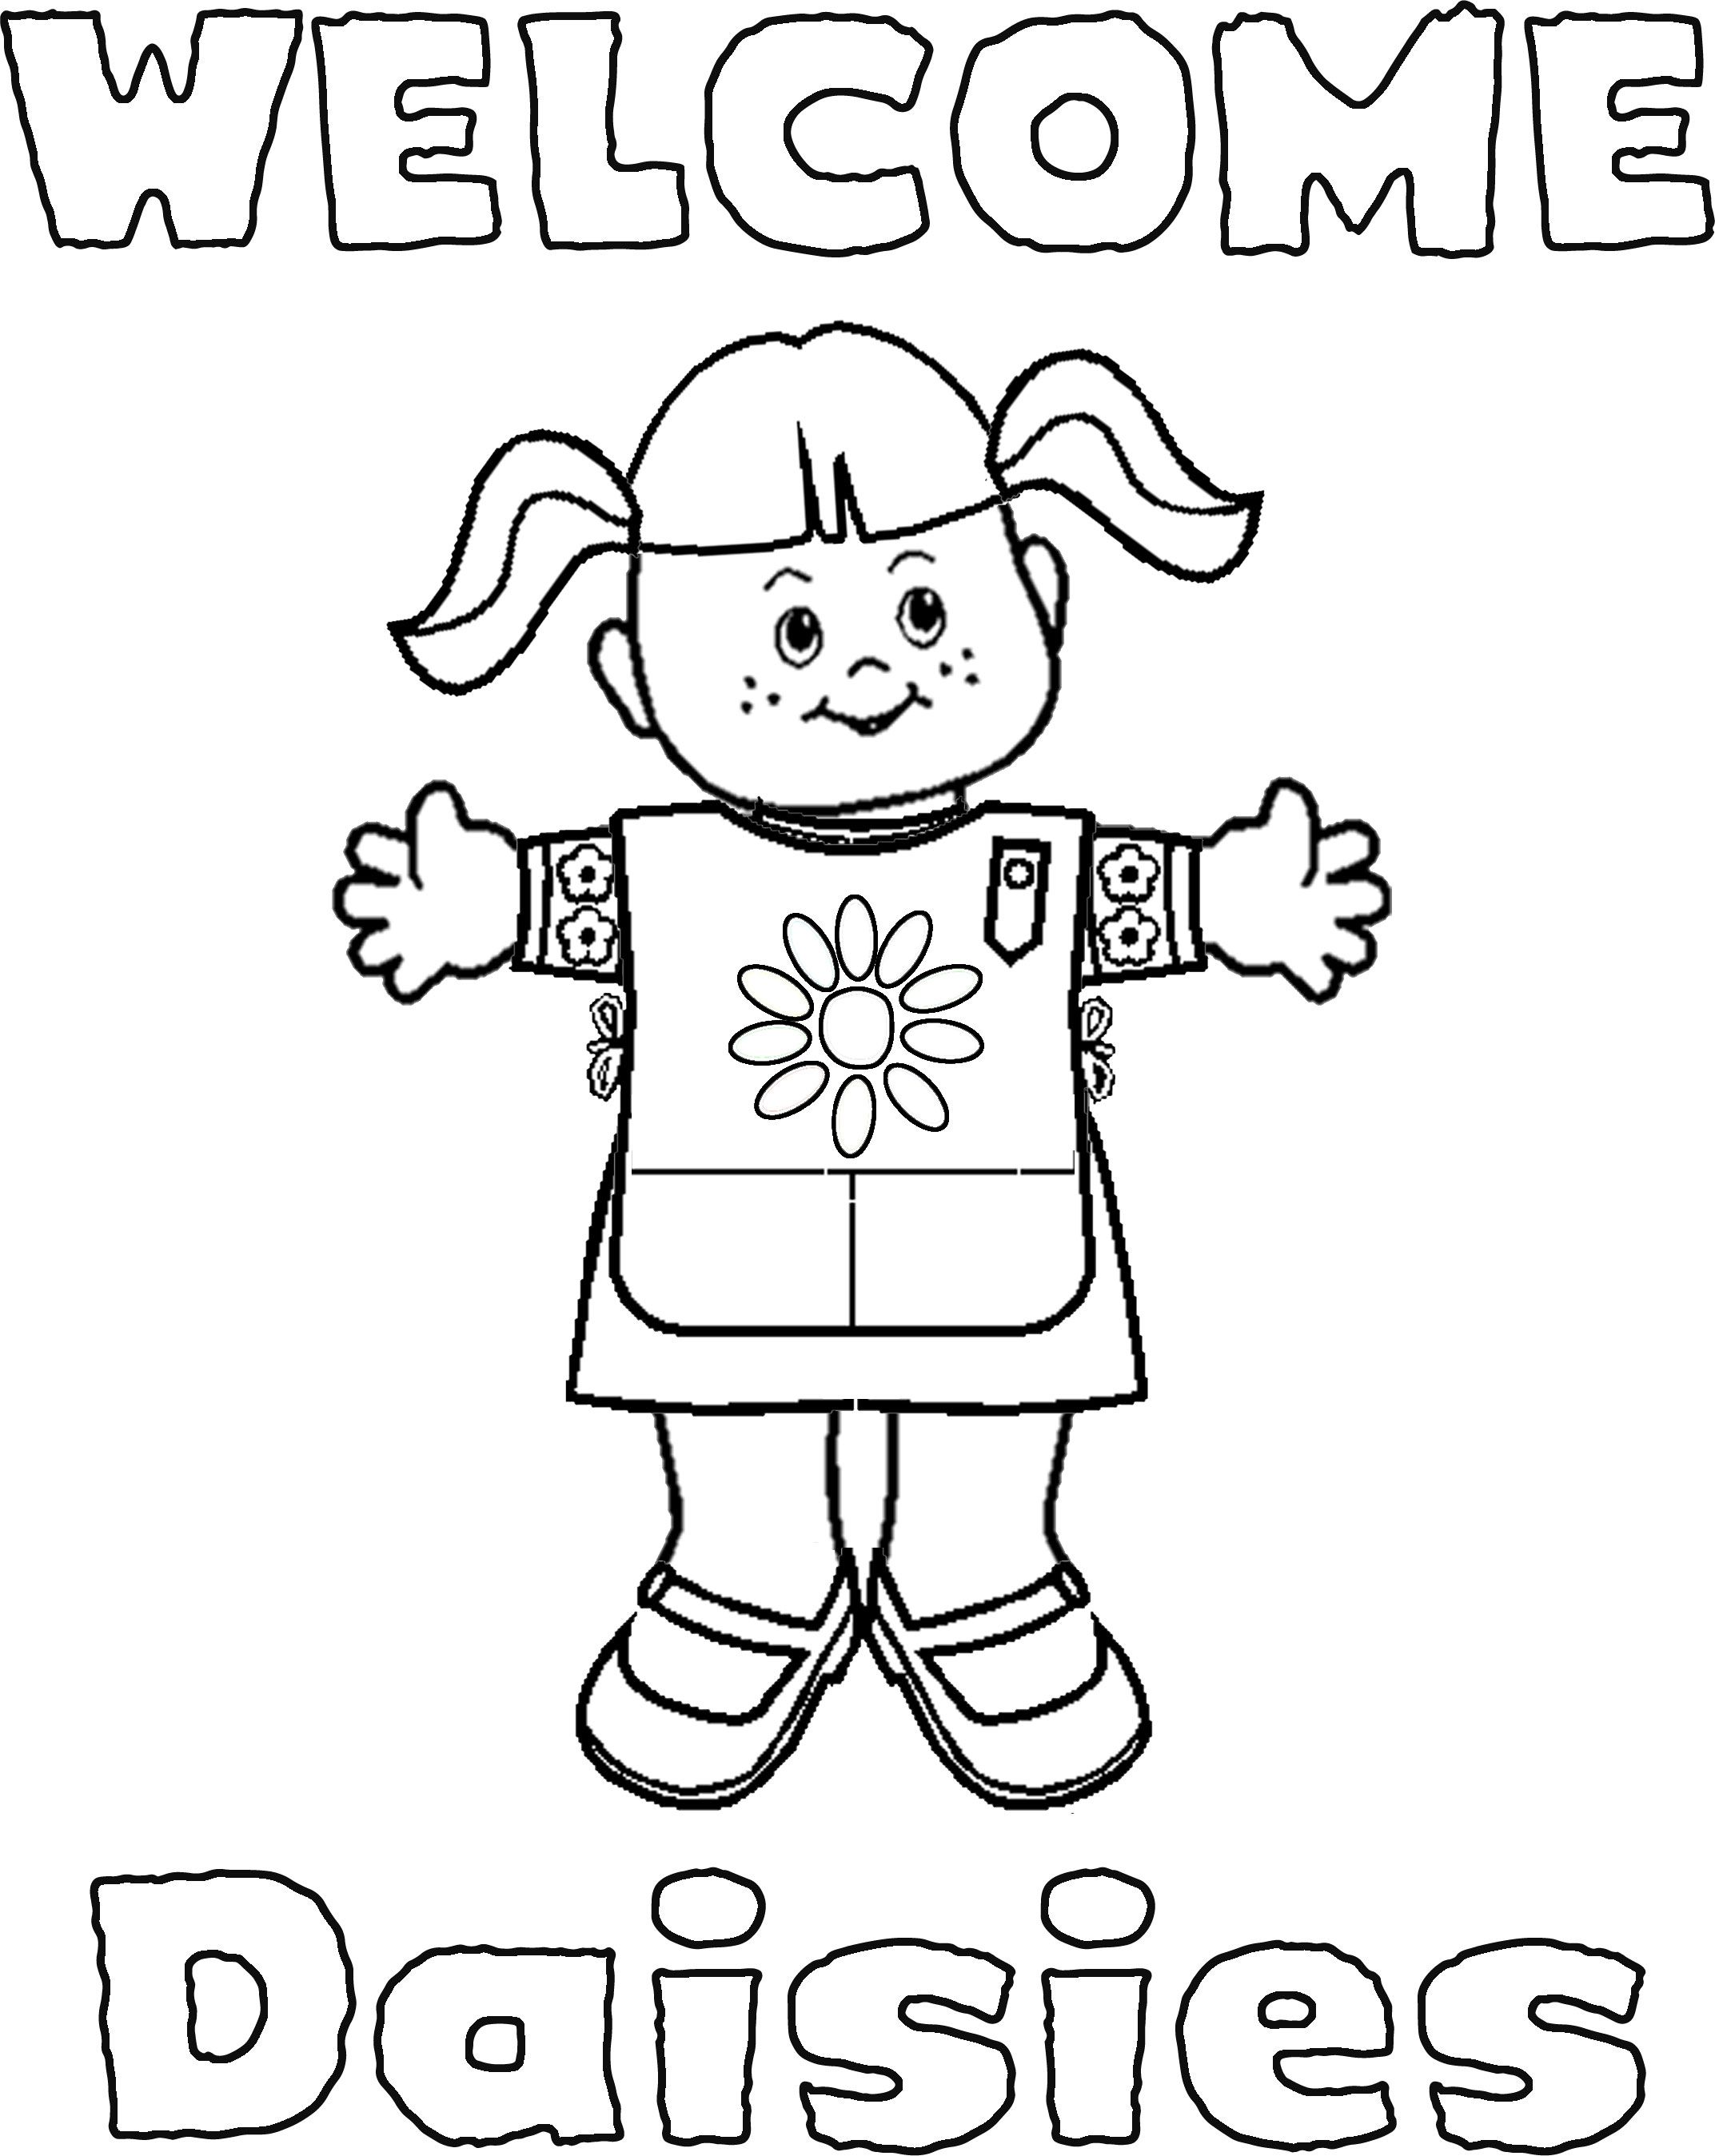 daisy girl scout coloring pages Coloring Pages For Daisy Scouts | girl scout coloring page super  daisy girl scout coloring pages